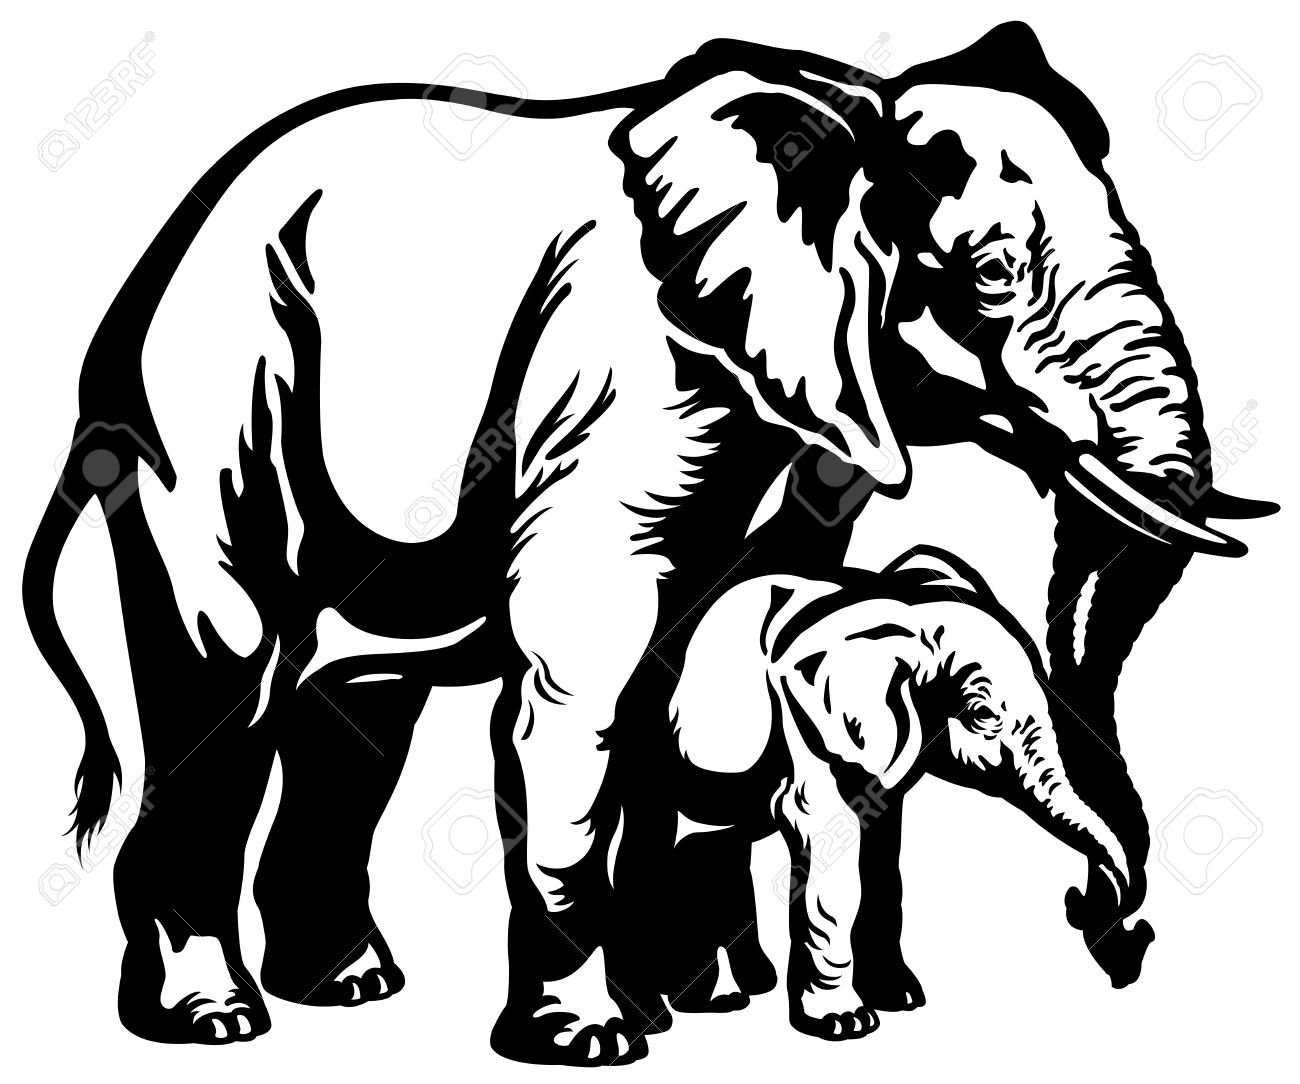 african elephant mother with baby black and white illustration.